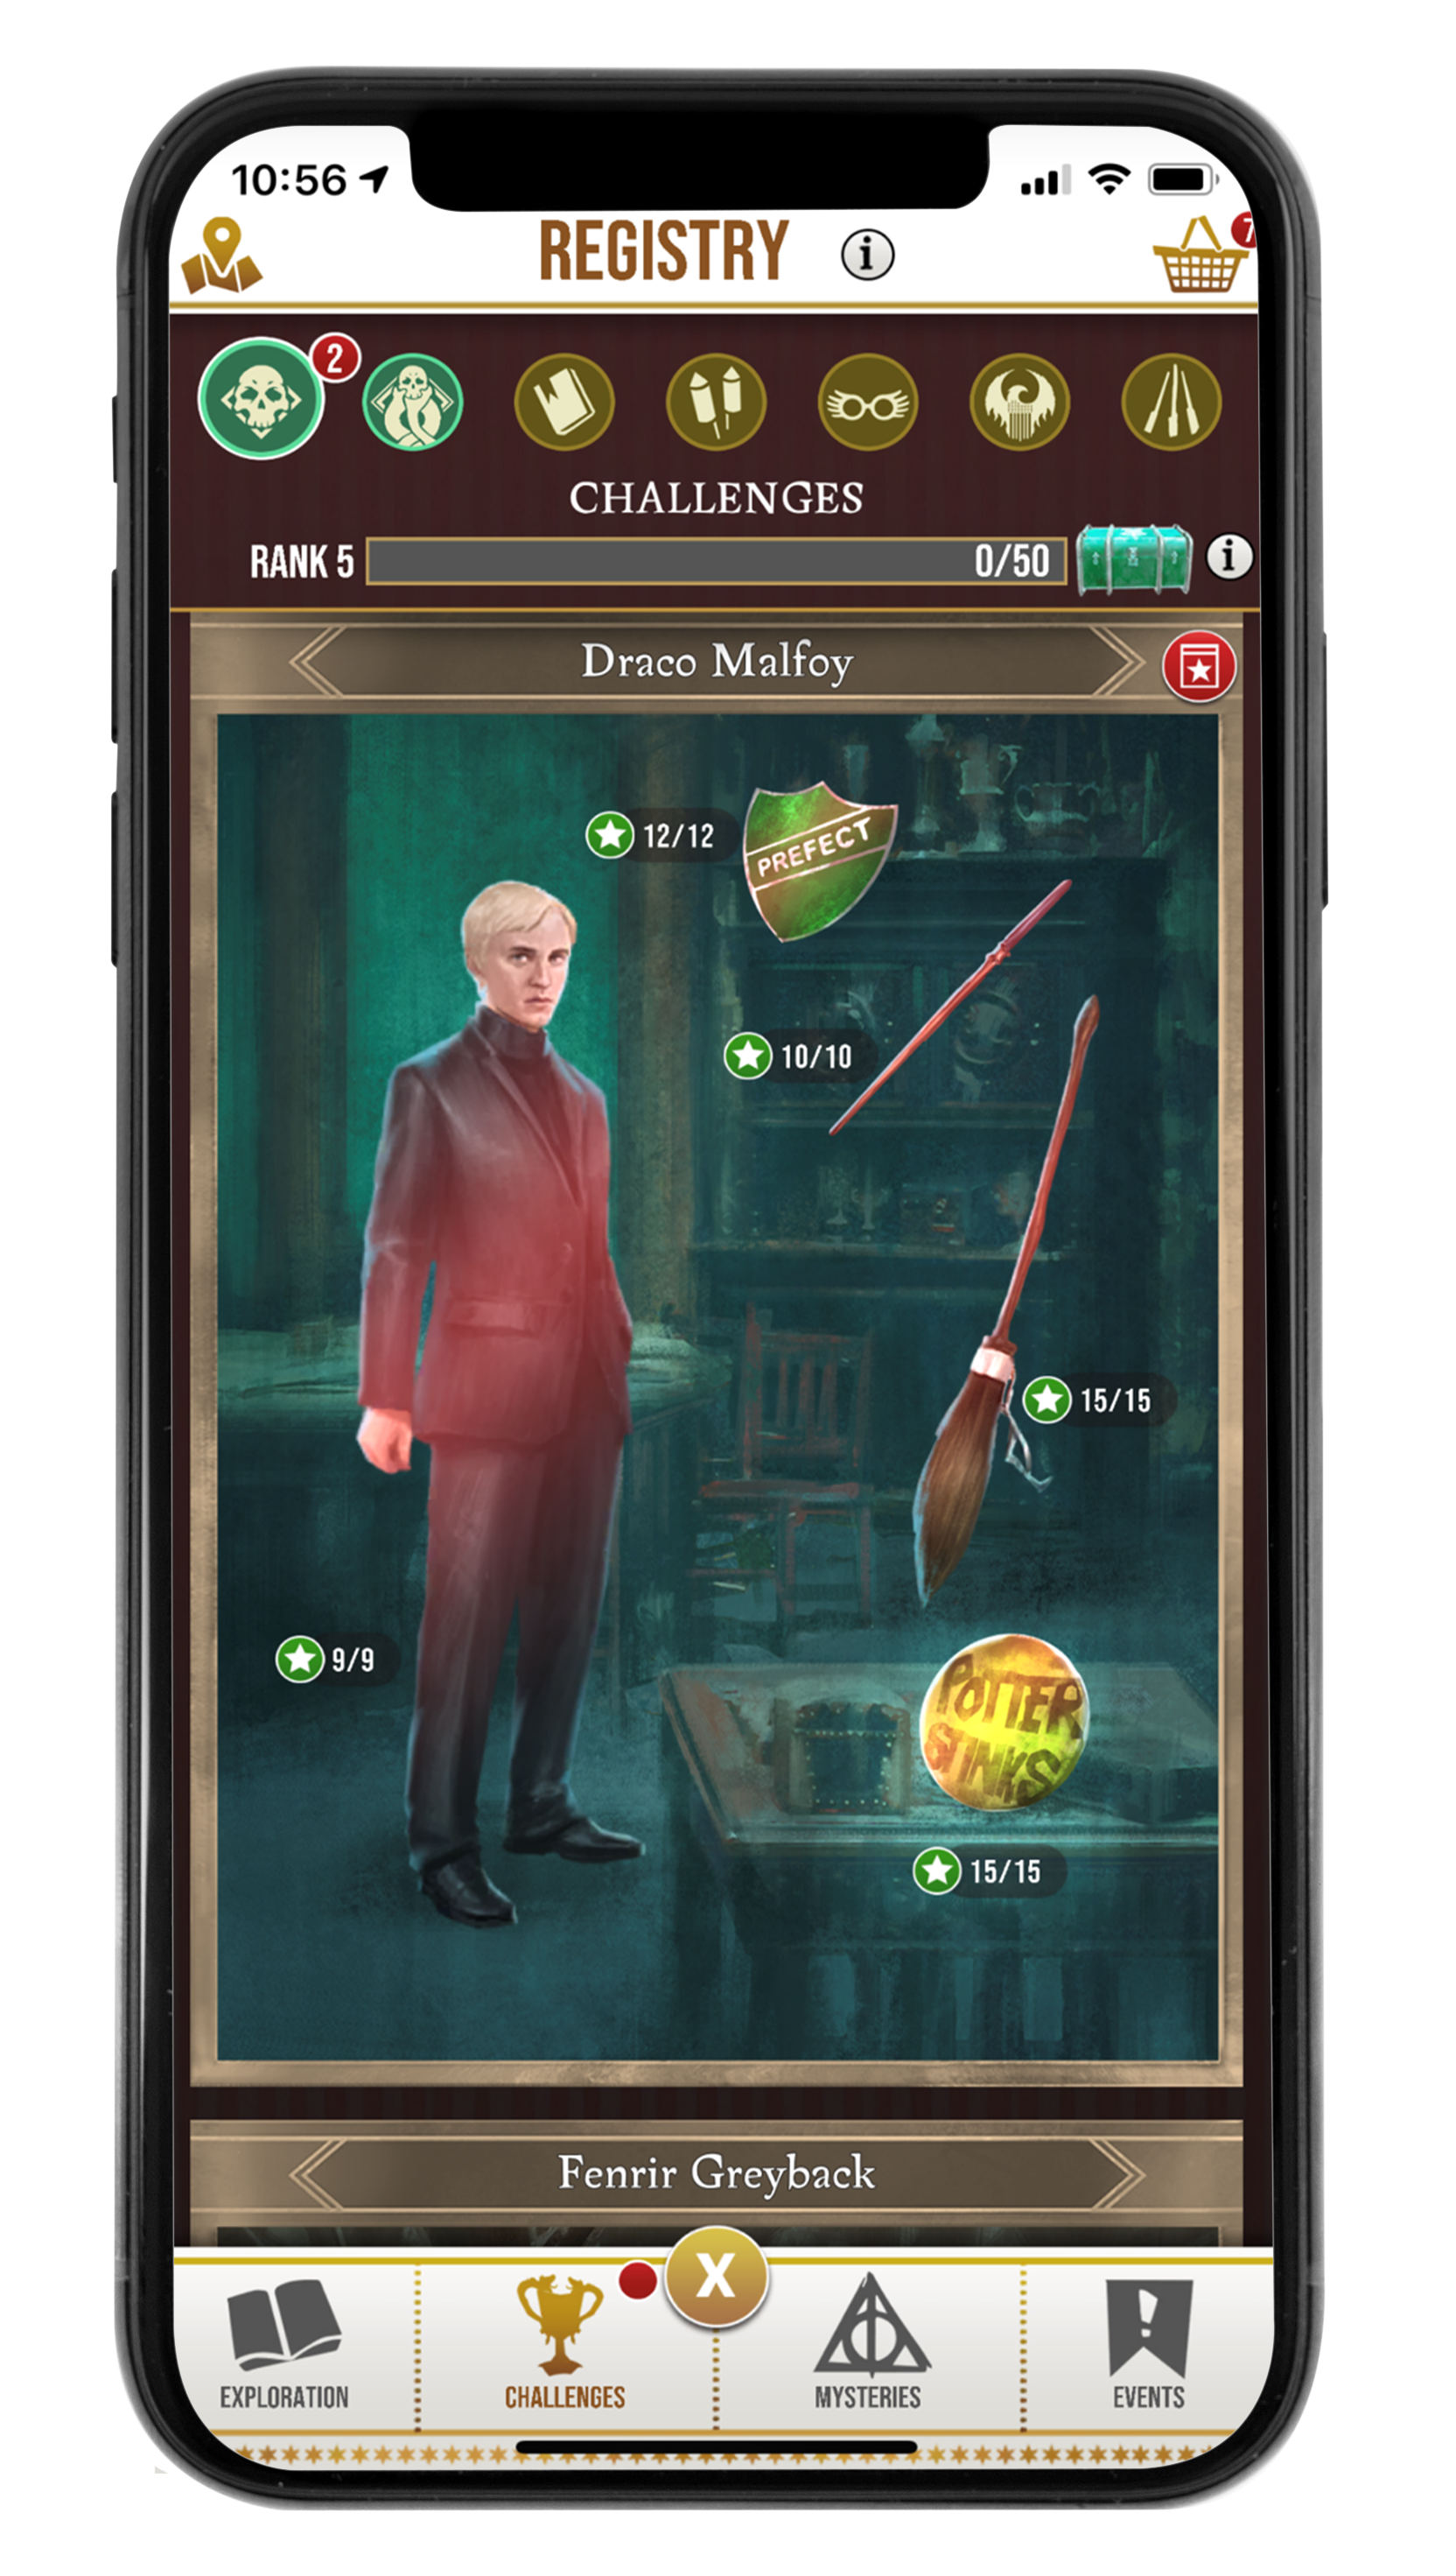 HPWU, HARRY POTTER, MOBILE, WIZARDING WORLD